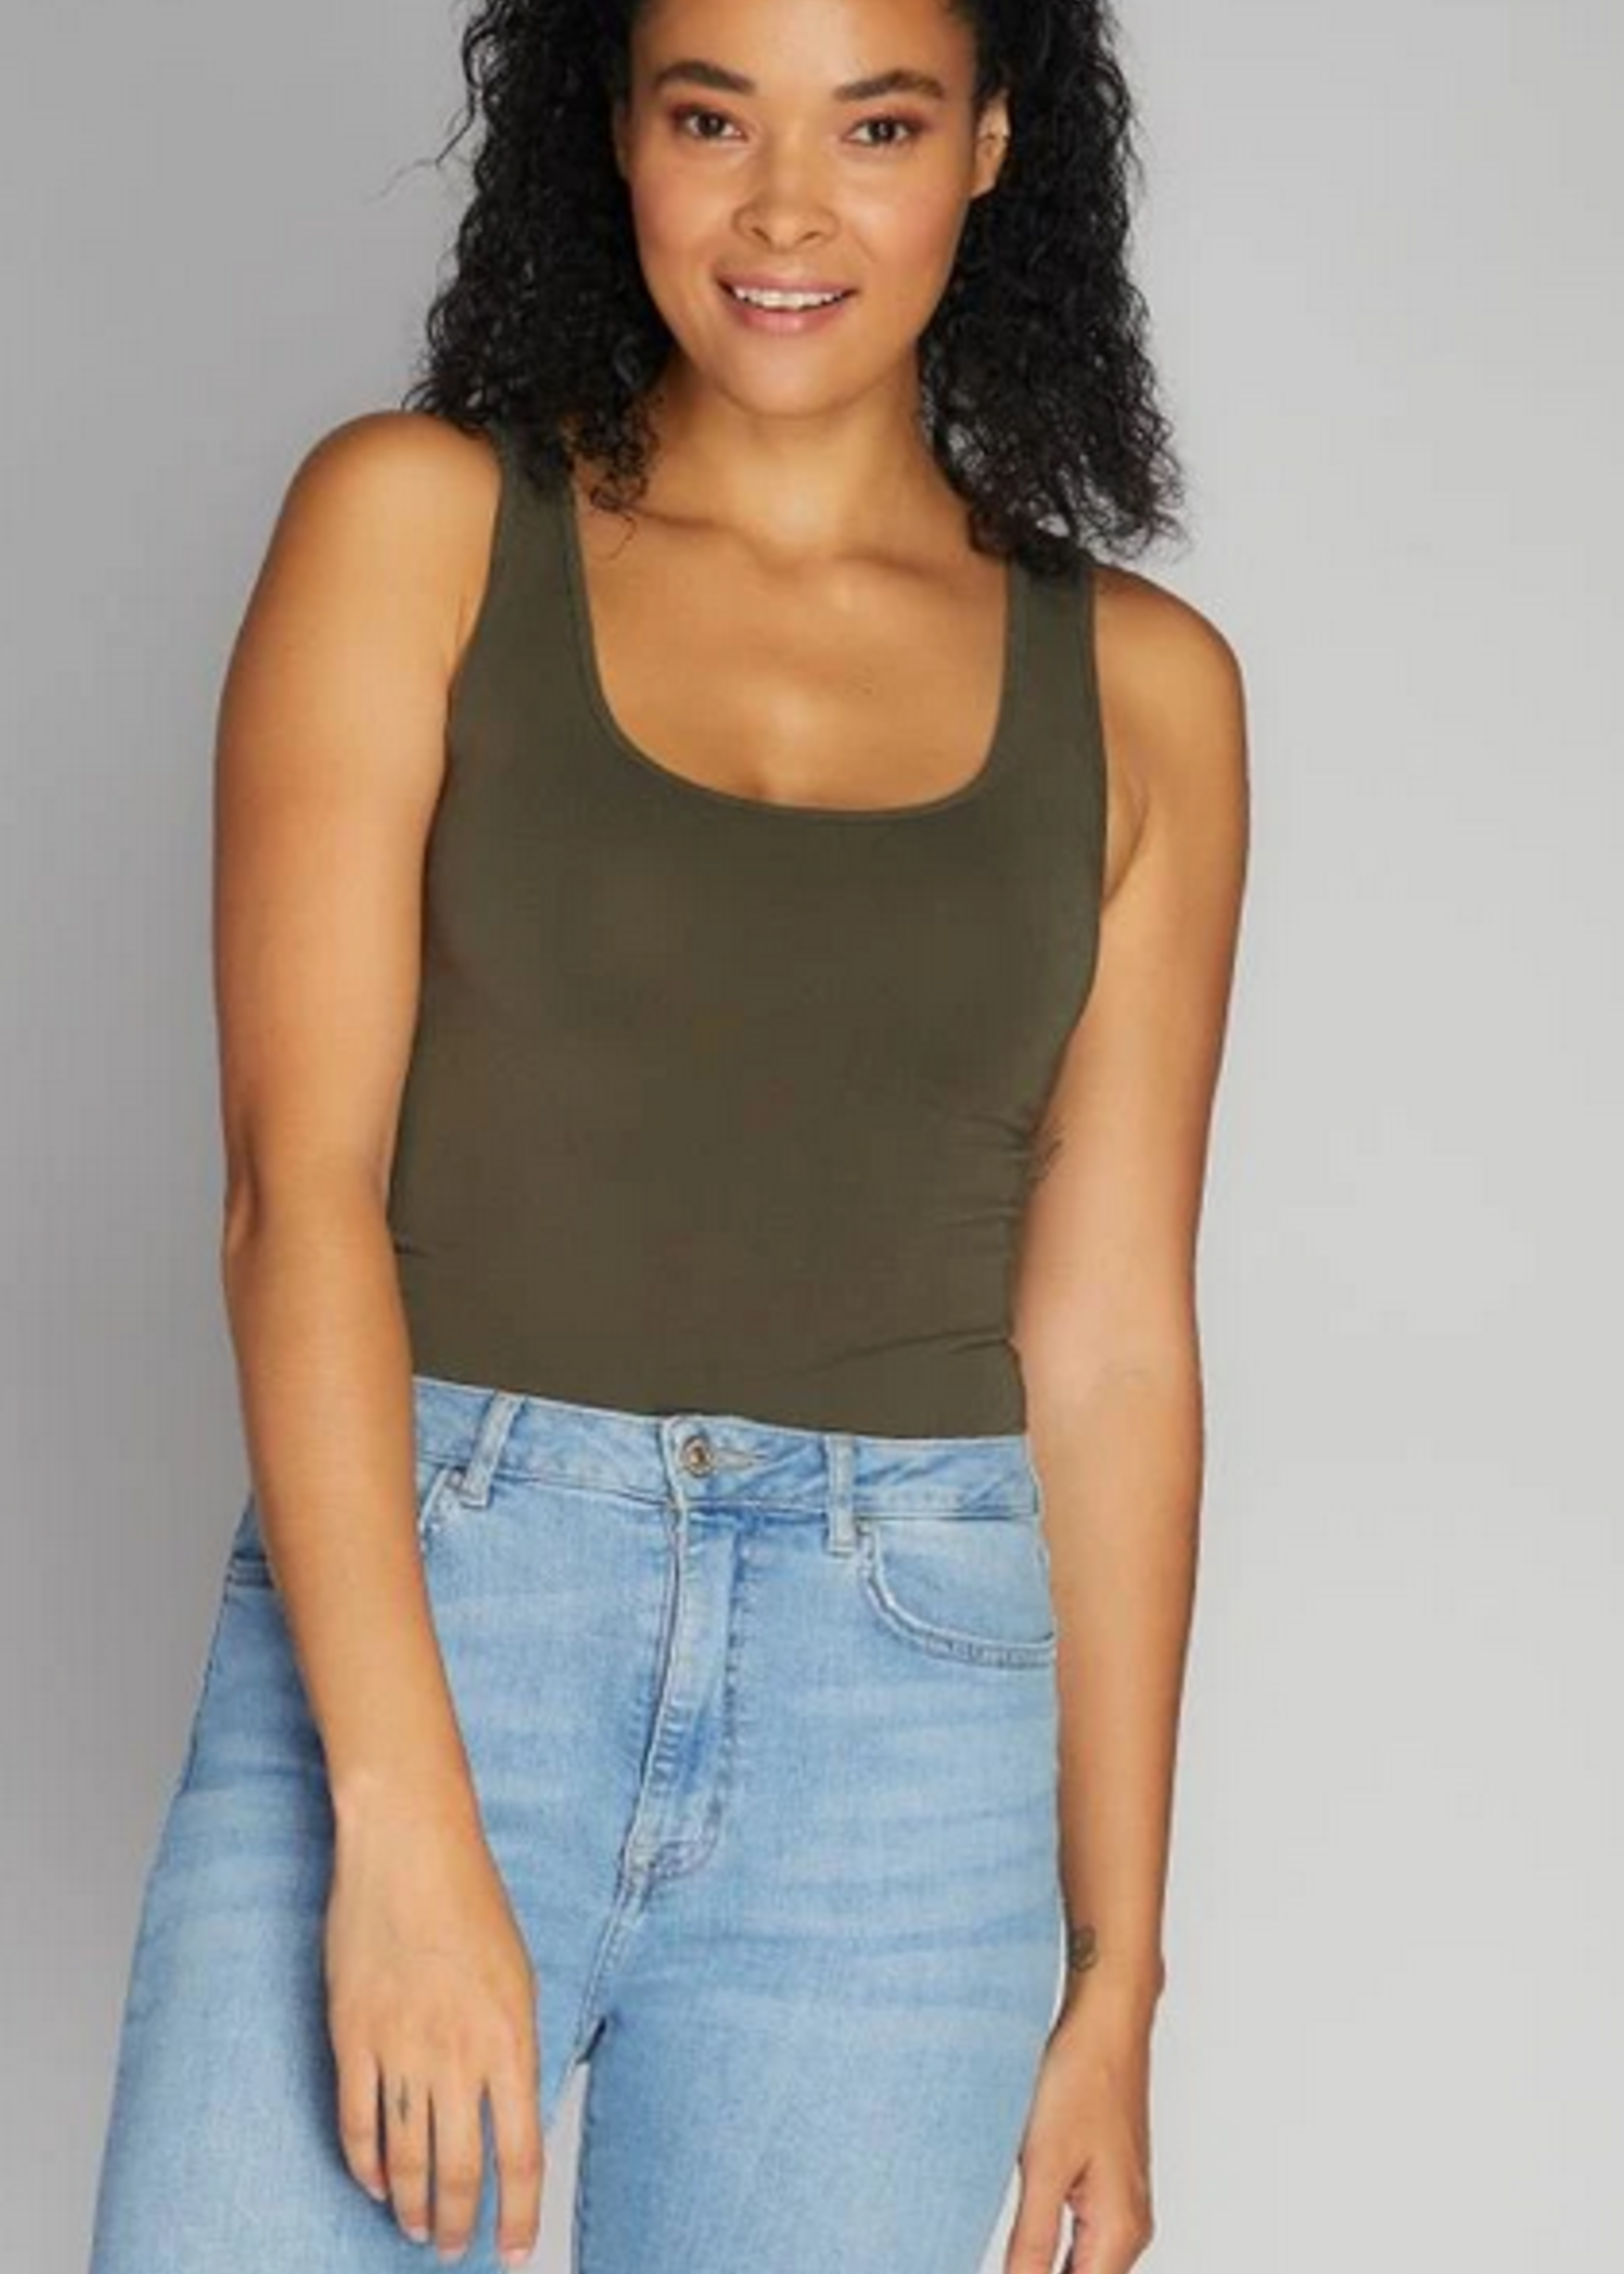 CEST MOI CLOTHING BAMBOO SHORT TANK OLIVE